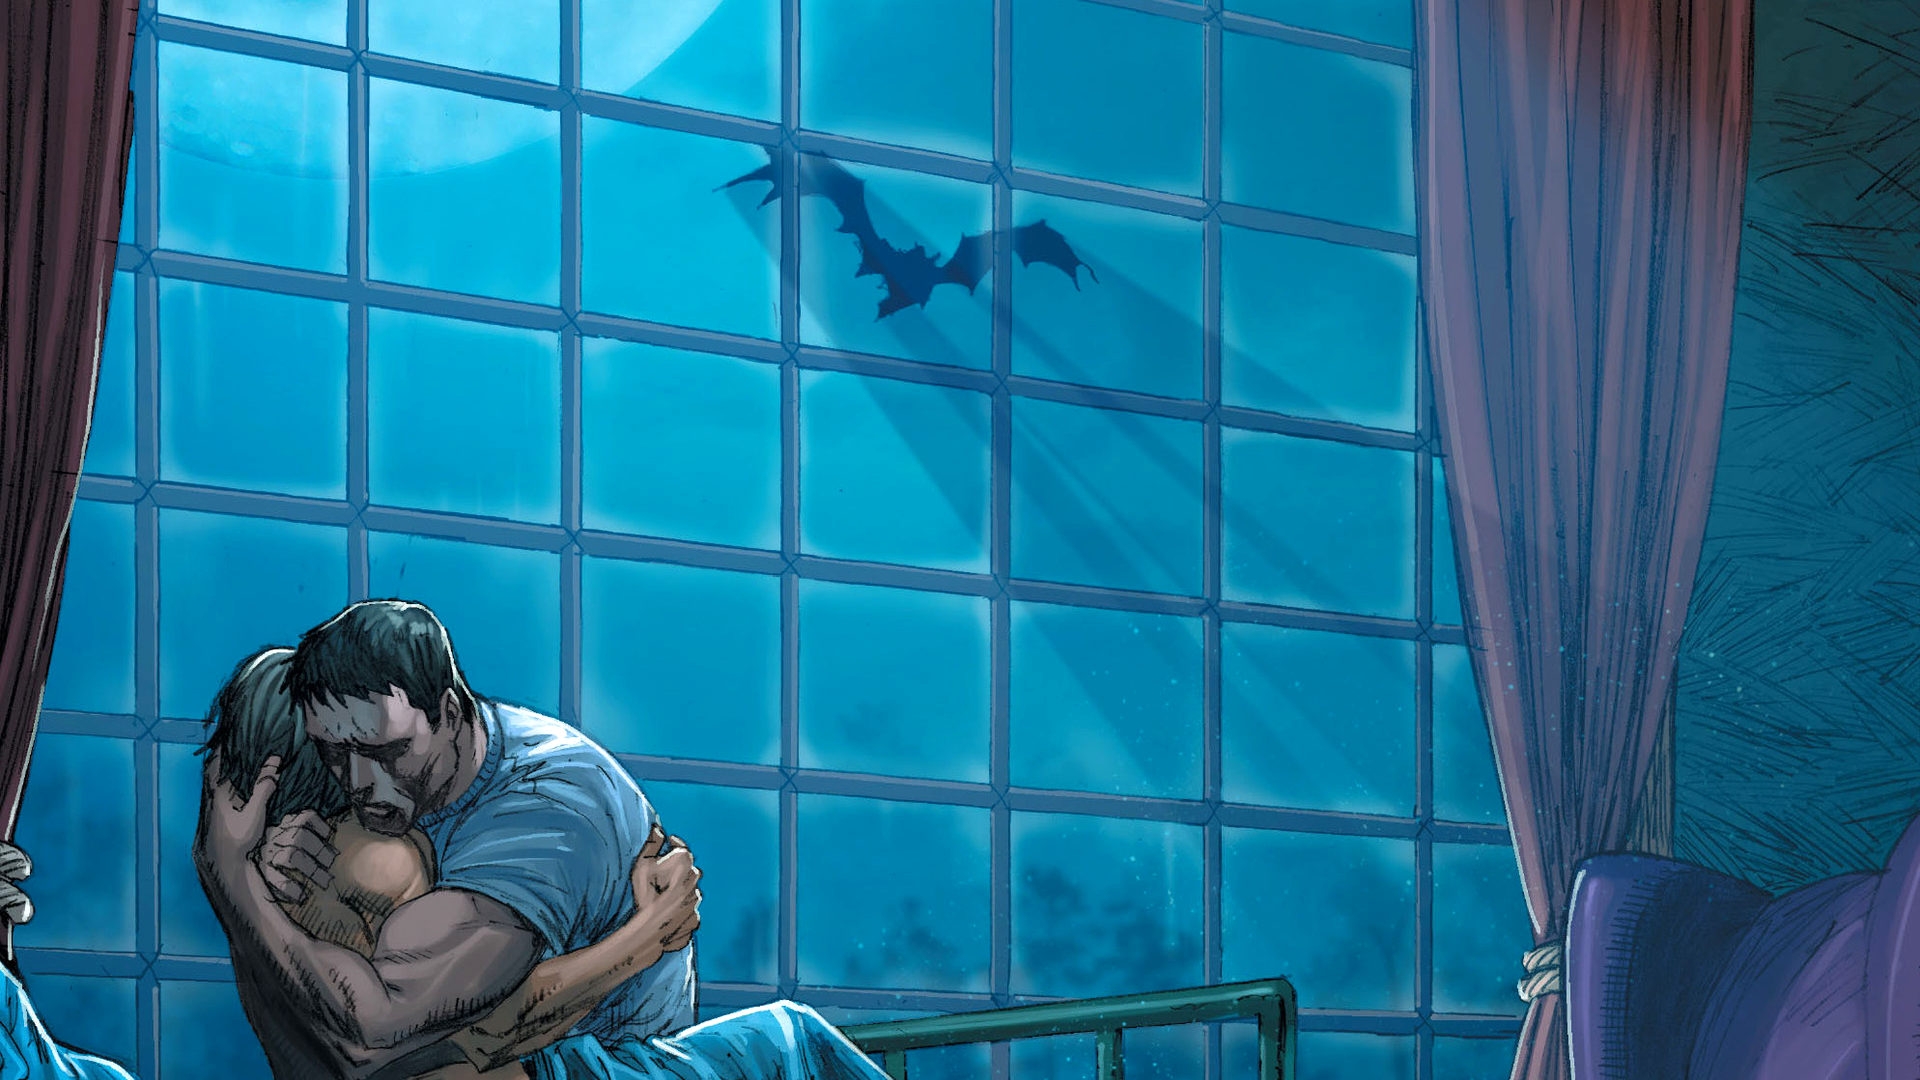 Batman Hug Embrace Drawing Shadow Night Window DC-comics wallpaper